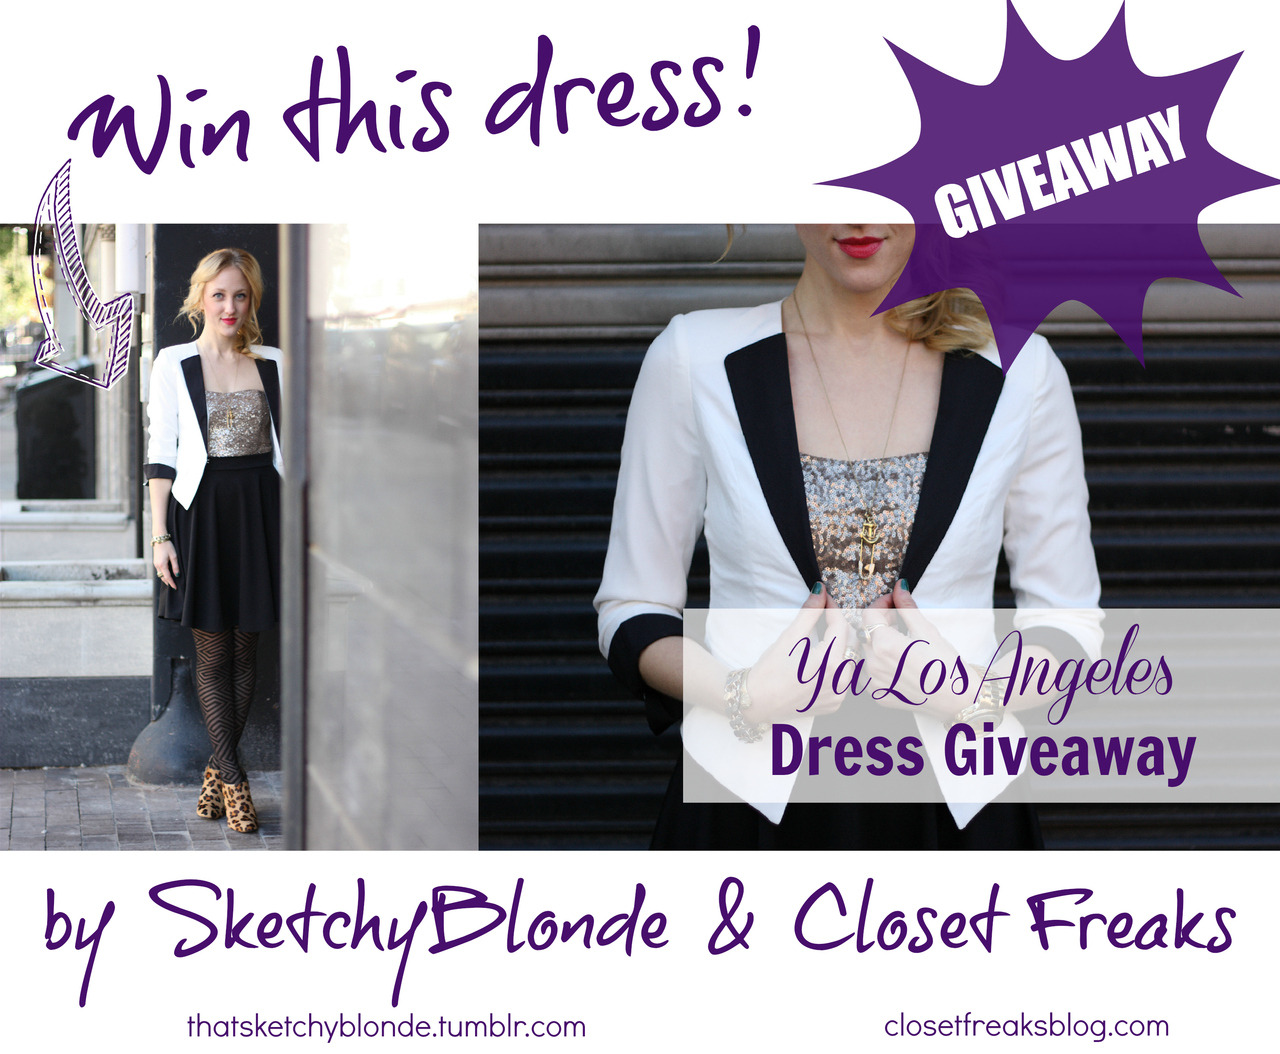 YA LOS ANGELES GIVEAWAY by Melanie Schnitzlein | @sketchyblonde | www.thatsketchyblonde.tumblr.com  You guys like free stuff, right?? That sequined Ya Los Angeles dress I wore on the blog last week is now totally, 100% up for grabs! Now you,  yes you, can own this hot dress from one of my all-time favorite makers of adorable clothing that also won't make me poor - and it won't cost ya a thing. Kind of like J.Lo's love. The dress itself  is a super-soft black jersey fabric, very comfortable to wear, even while prancing around your neighborhood with two tired, slightly grumpy Jersey City residents following you around and taking your picture (hi guys!). The sequins on top are tiny and layered, and a very nice burnished sort of silver - very classy sequin action going on. I could see this dress putting on a bright lipstick and going out on New Years Eve, drinking delicious cocktails and taking waaayy too many pictures. It's a size small, but with a lot of stretch and a full-skirted, forgiving bottom half. If it still sounds like you're too busty or bootylicious, enter anyway! Gift it to a friend to guilt her into getting you a good Christmas gift. Or him, whatever. This is safe space. So what are you waiting for? Get involved and get something for free. Take a looksy at how to enter below: a Rafflecopter giveaway Good luck xx Anthony, Dustin, & Melanie